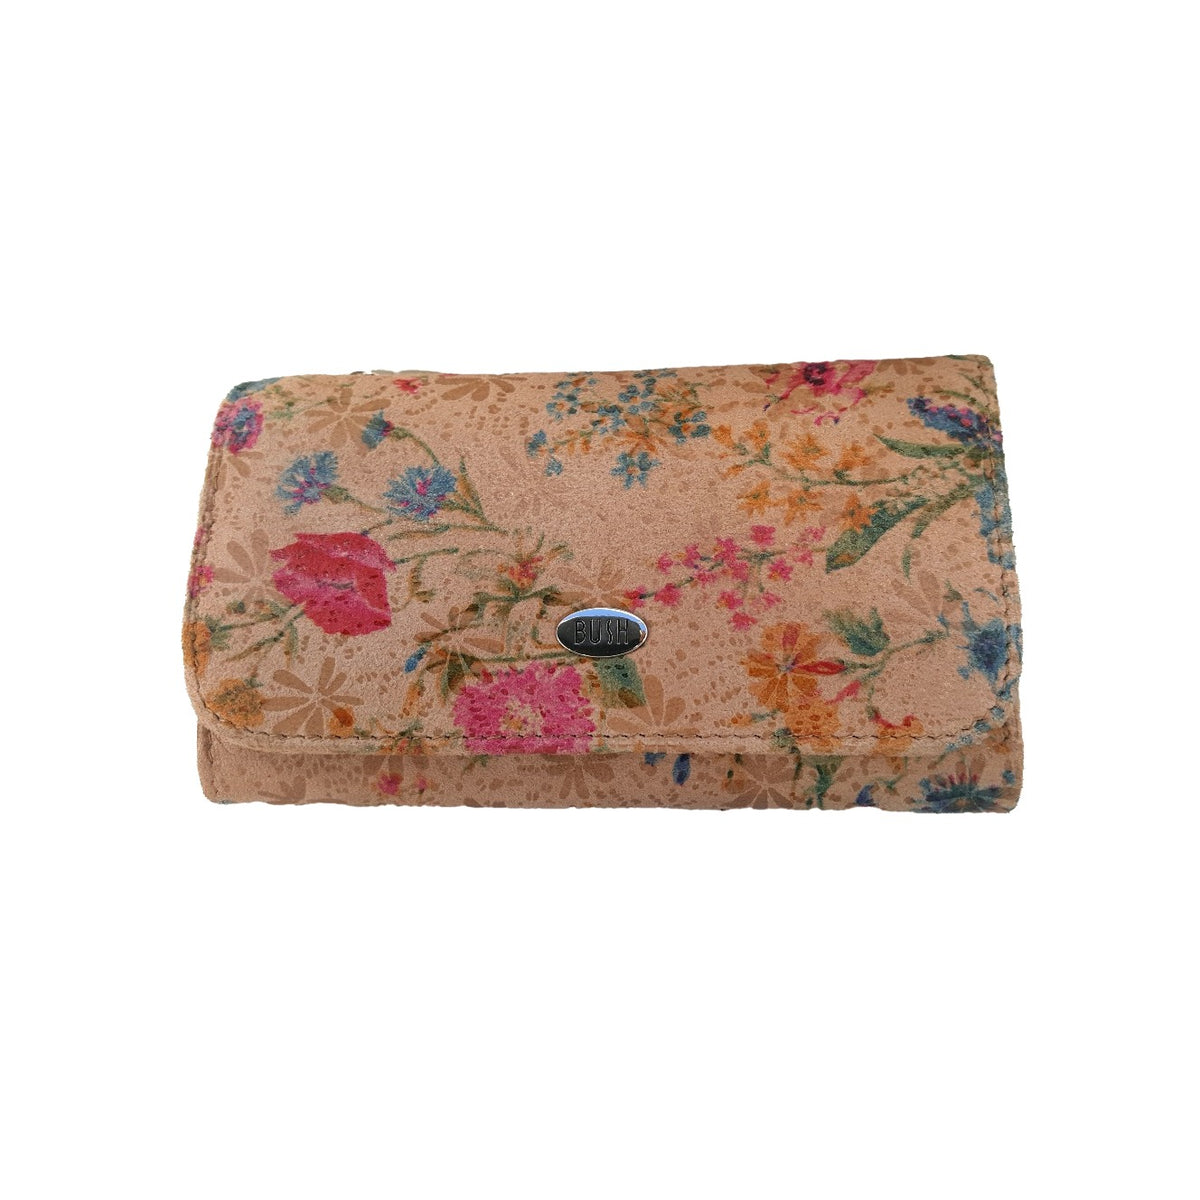 Classic Flora Design Kangaroo Leather Wallet